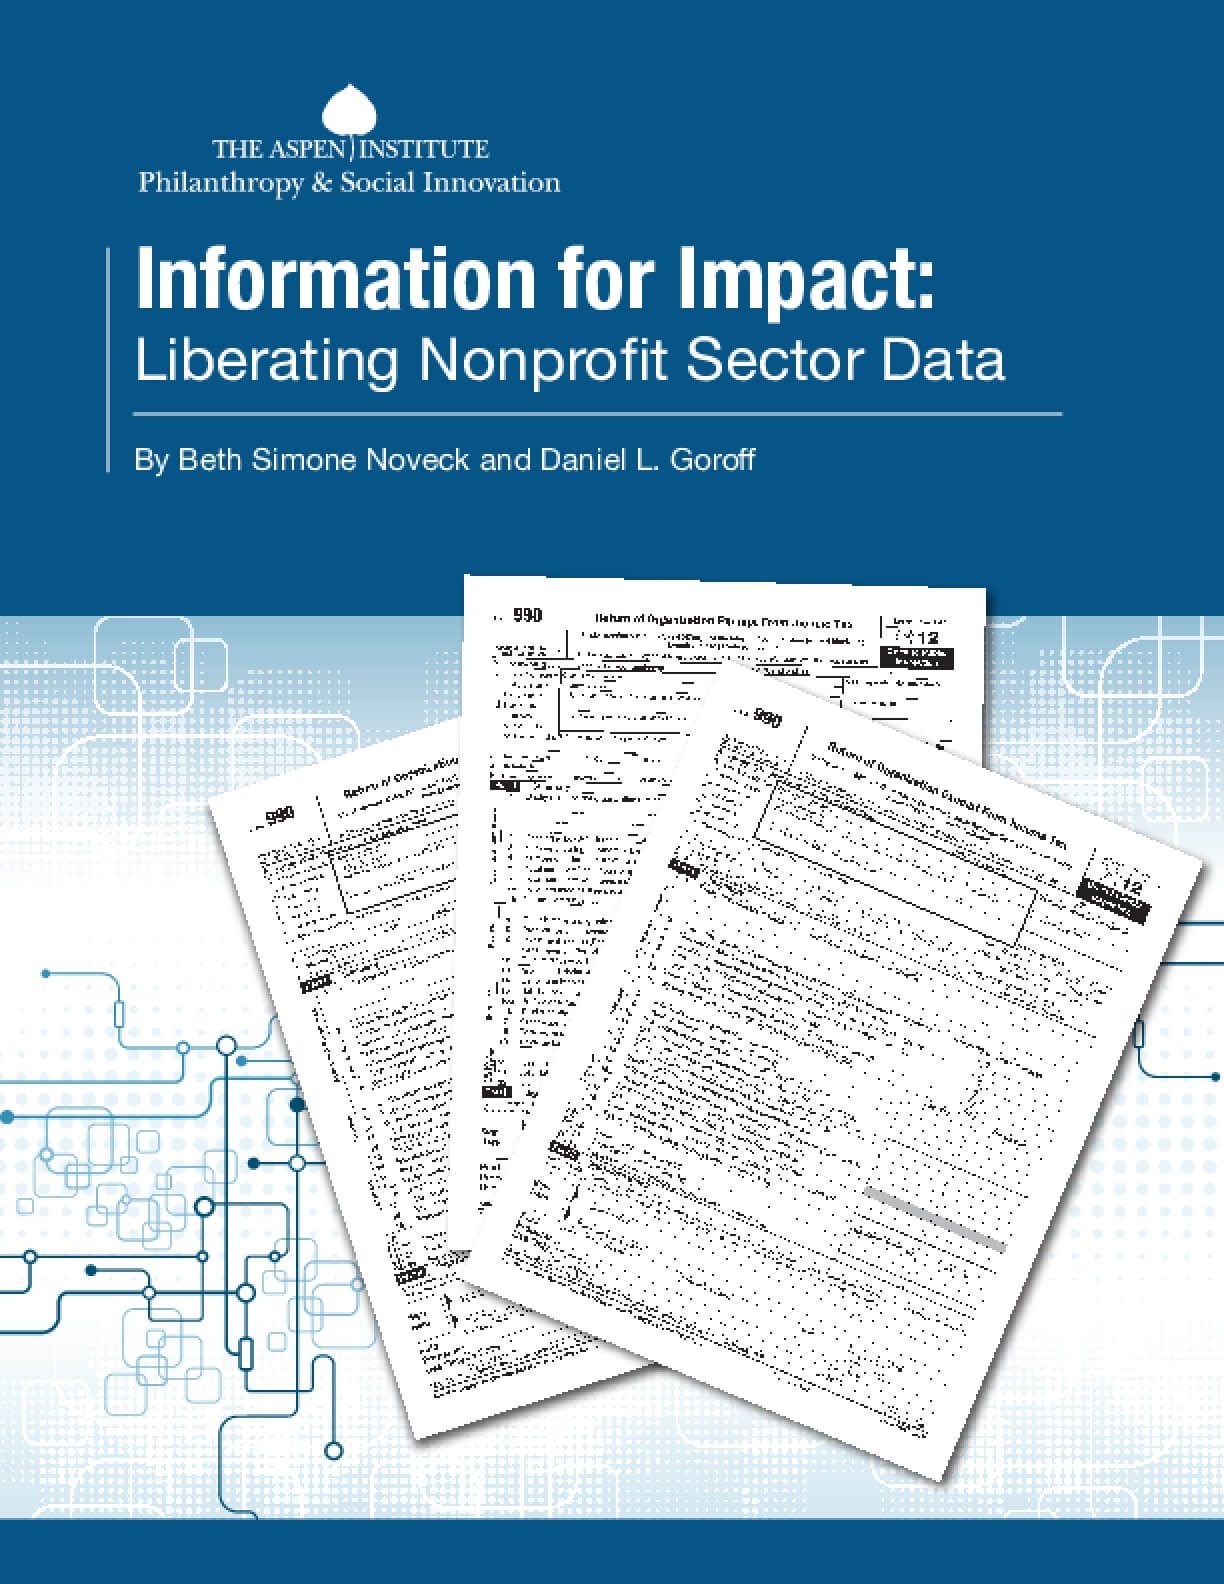 Information for Impact: Liberating Nonprofit Sector Data